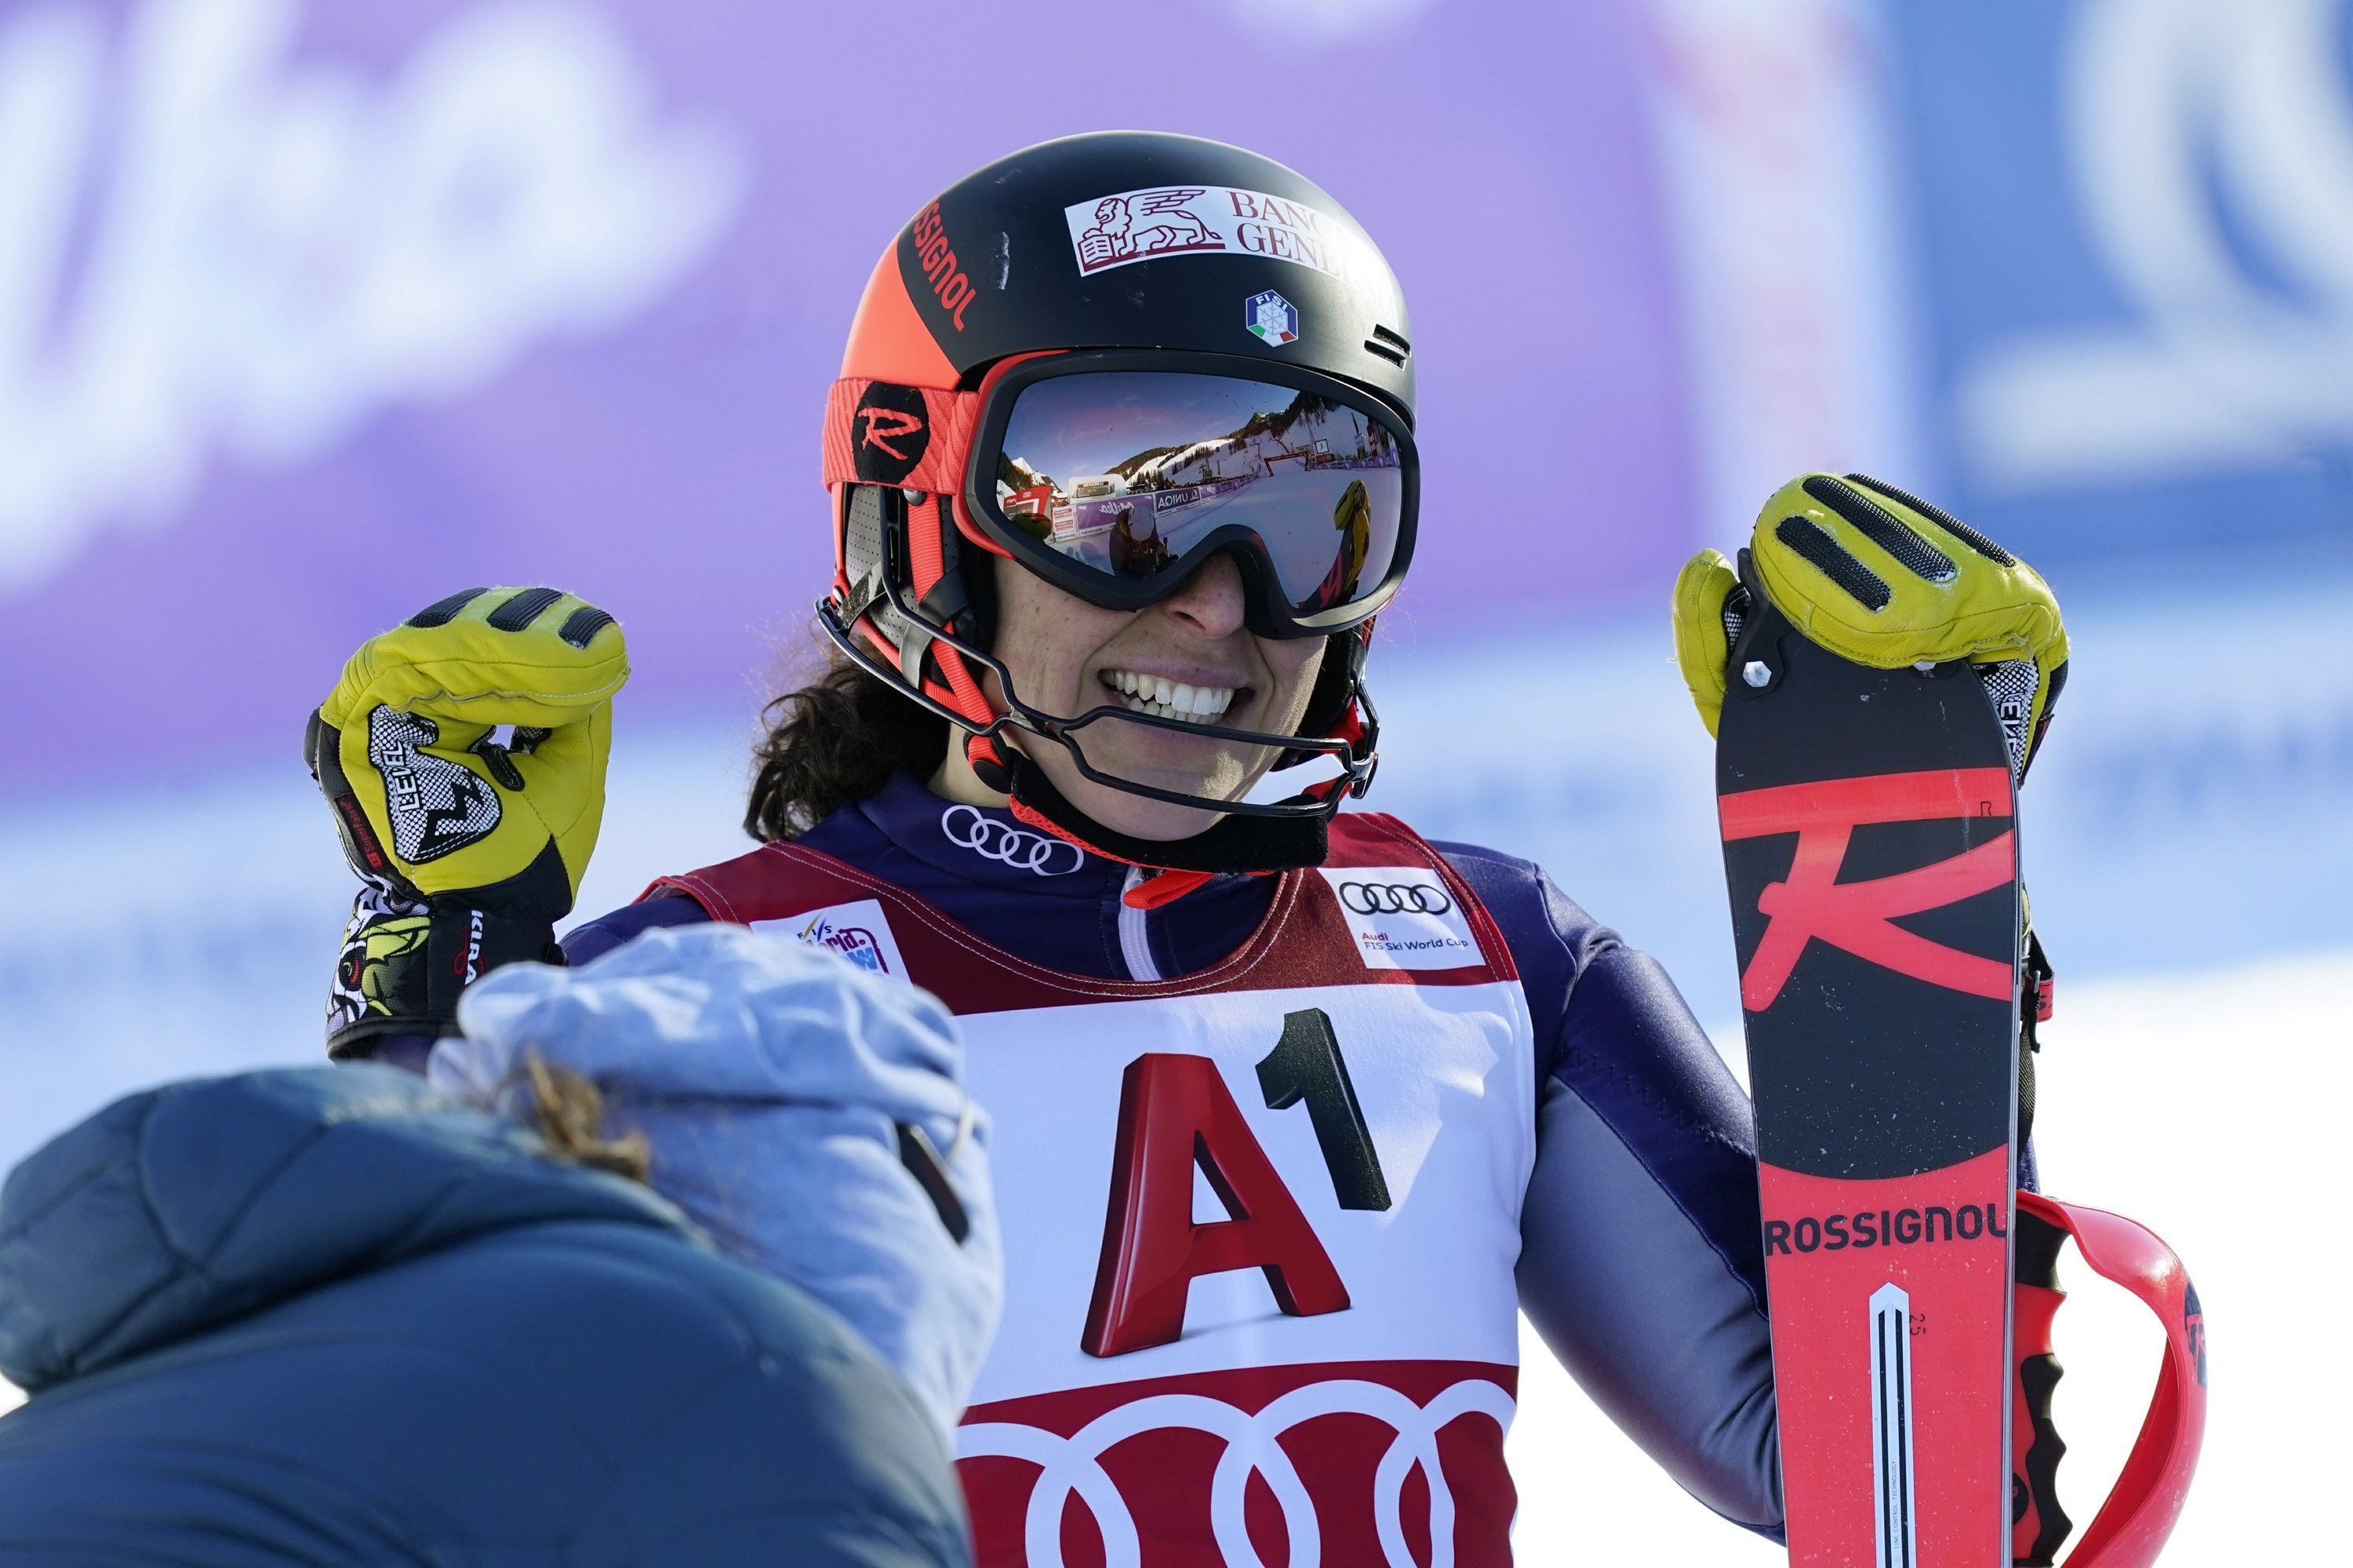 Brignone wins World Cup combined event; Shiffrin skis out